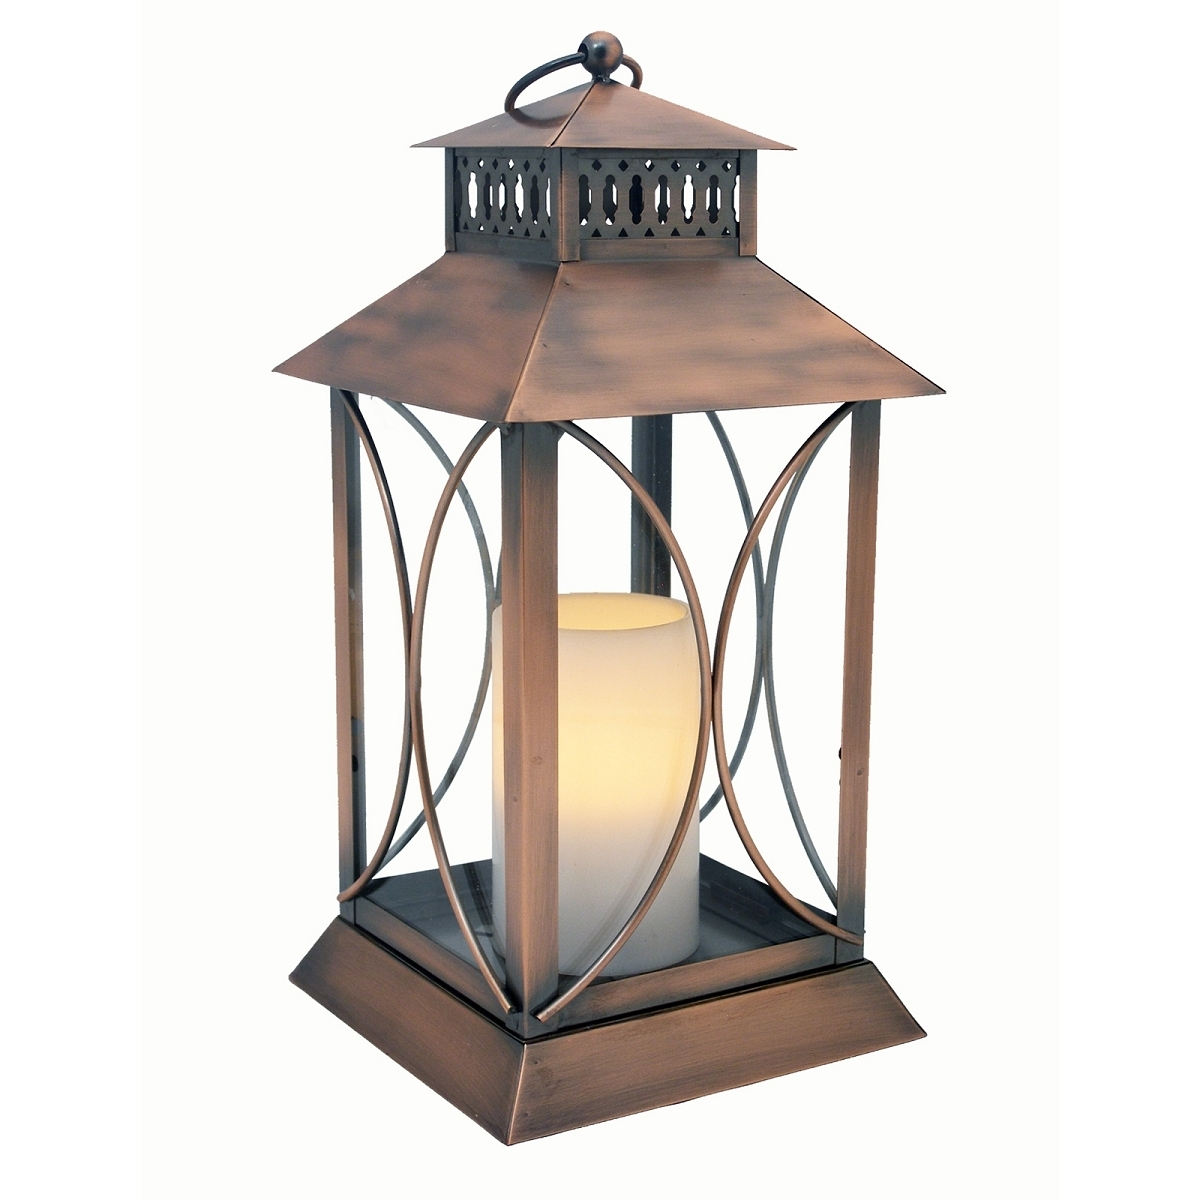 Newest Neuporte Flameless Candle Lantern With Timer Indoor Outdoor Inside Outdoor Lanterns With Timers (View 5 of 20)